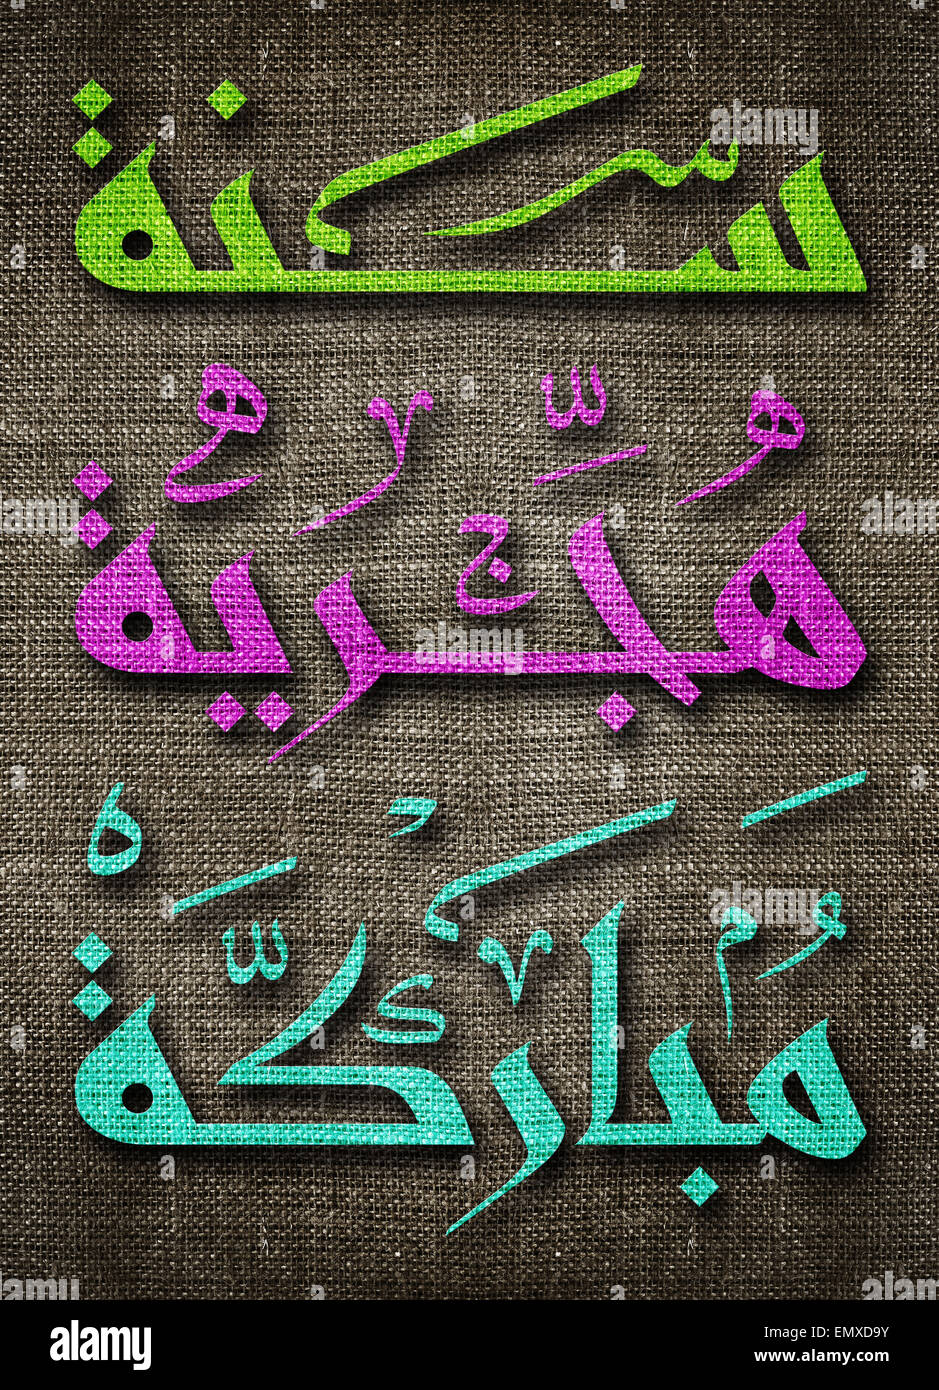 islamic hijri new year greeting card with arabic calligraphy of text wishing you a blessed new year